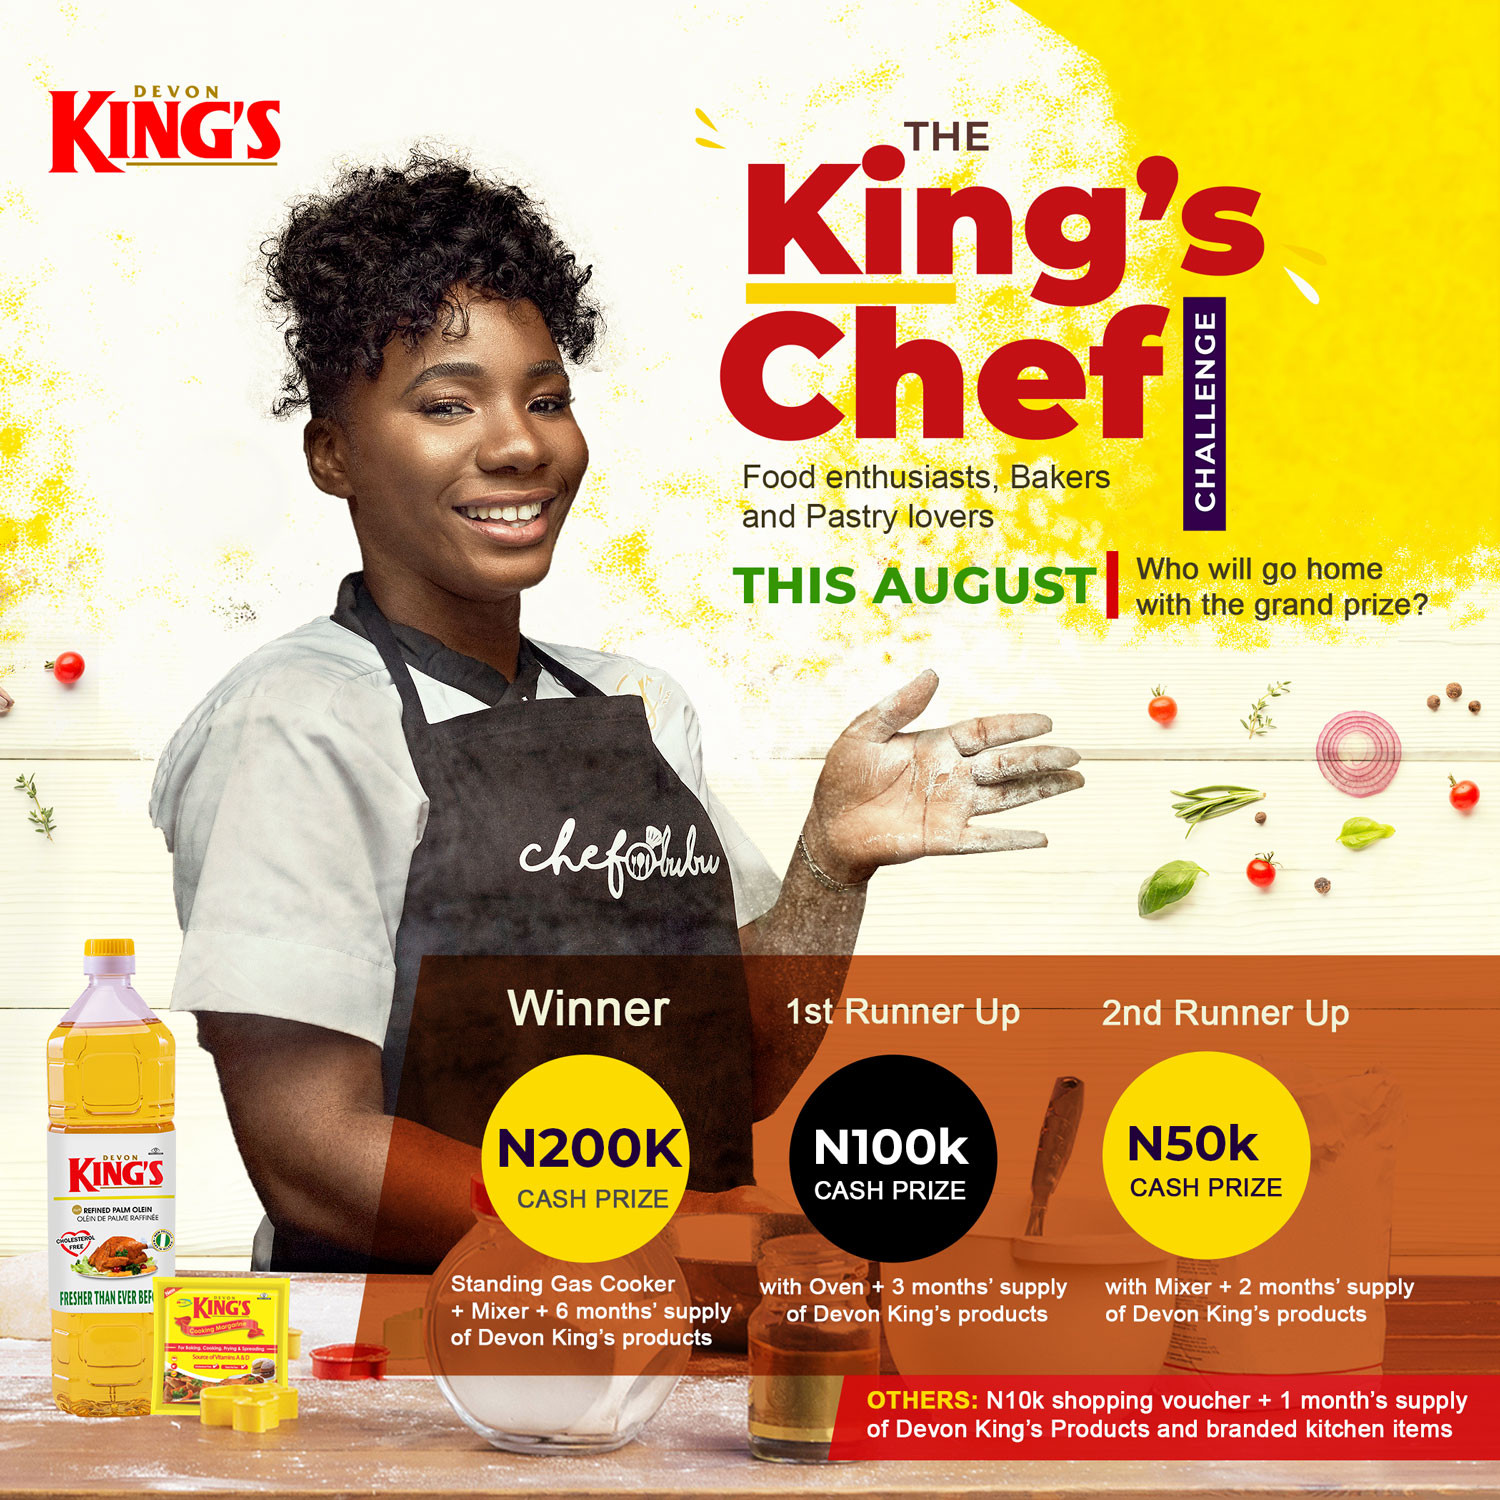 Up to 1 million naira worth prizes up for grabs in the Devon King?s #TheKingsChef challenge!